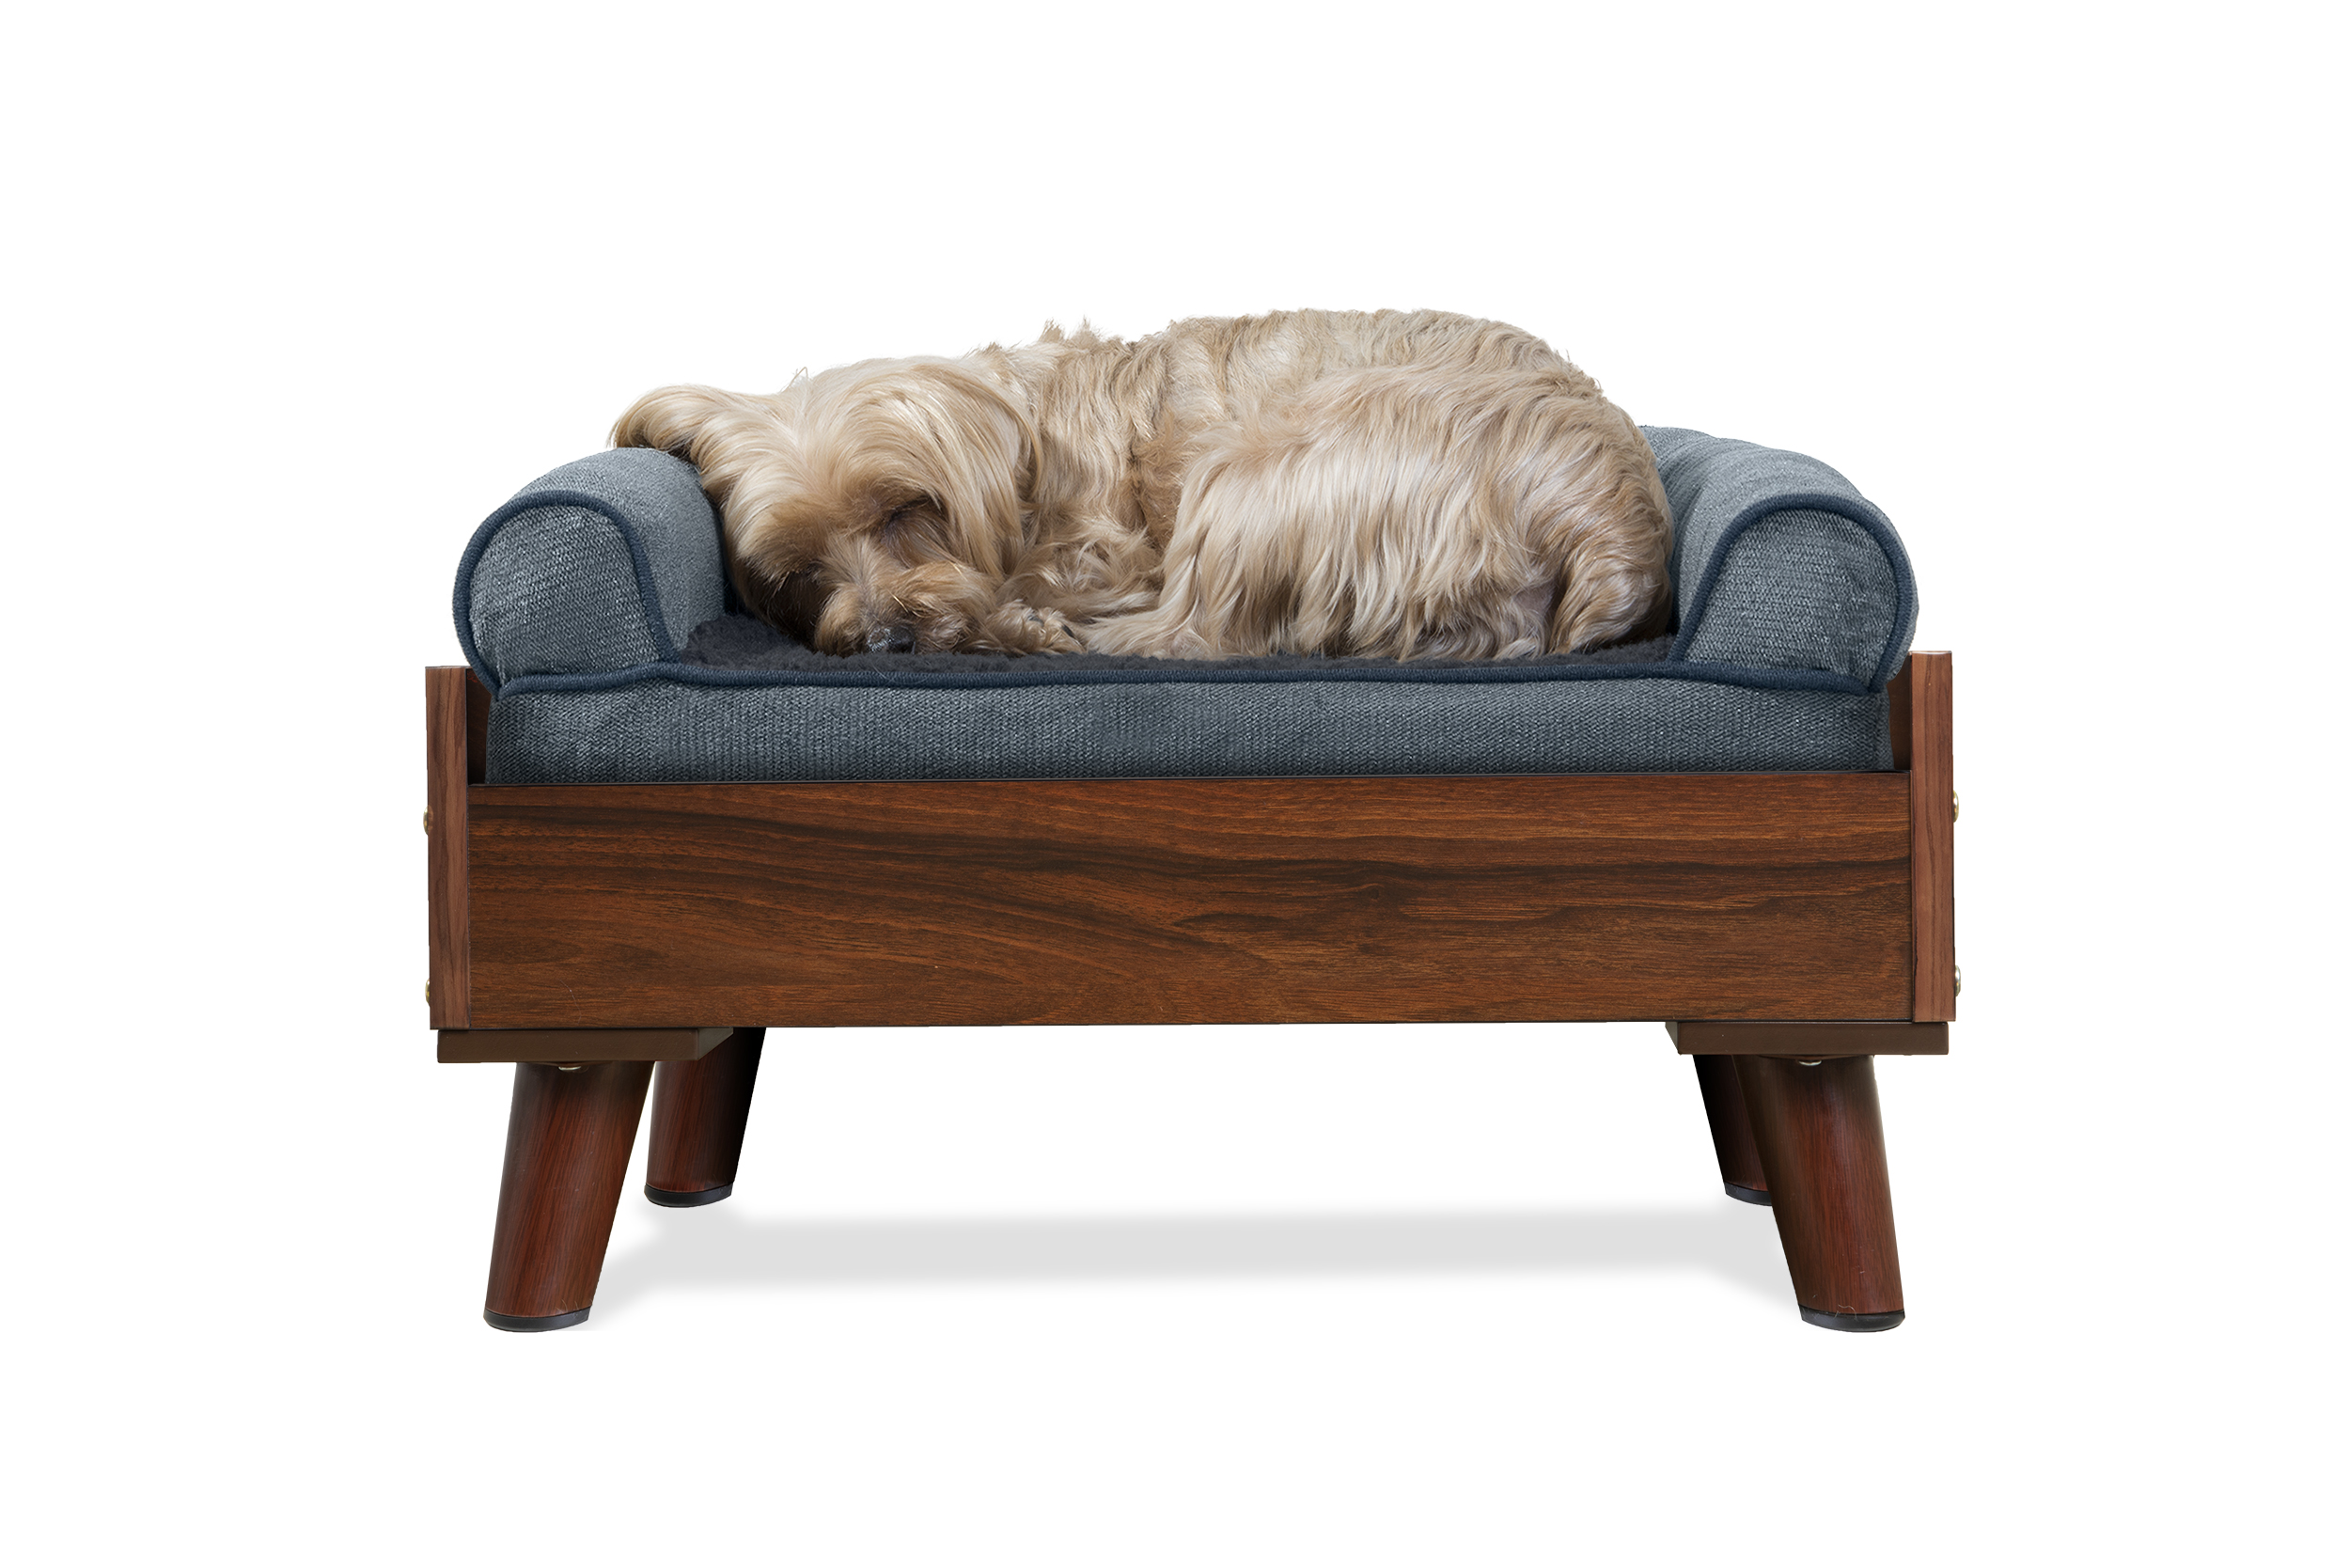 Details About Furhaven Bed Frame For Sofa Style And Deluxe Mattress Dog Beds